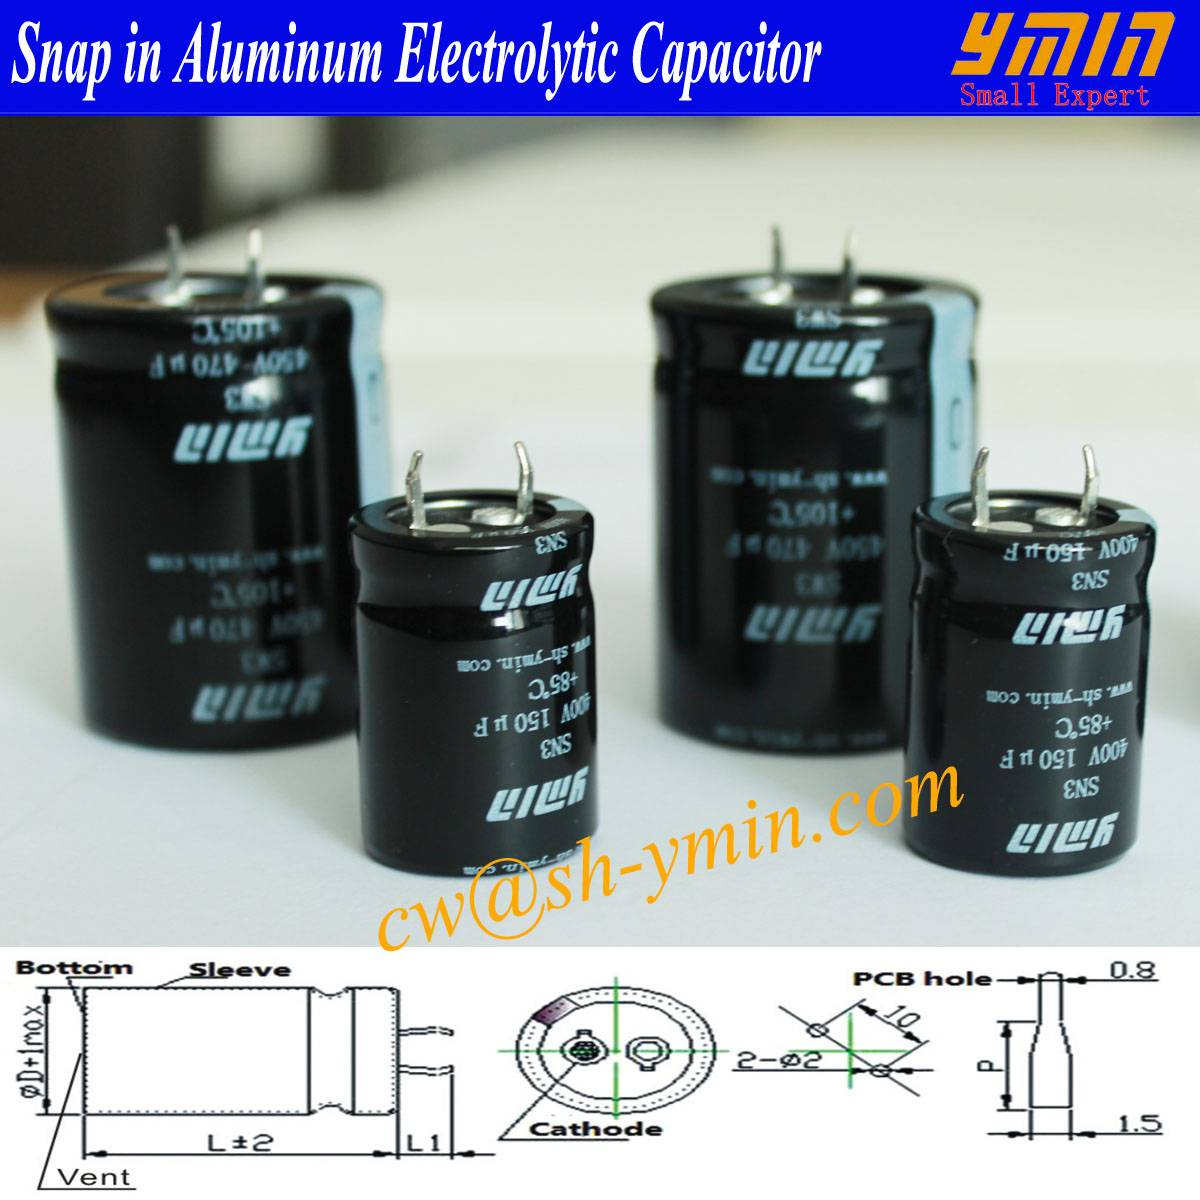 High Power Capacitor Snap in Electrolytic Capacitor for Power Inverter and UPS